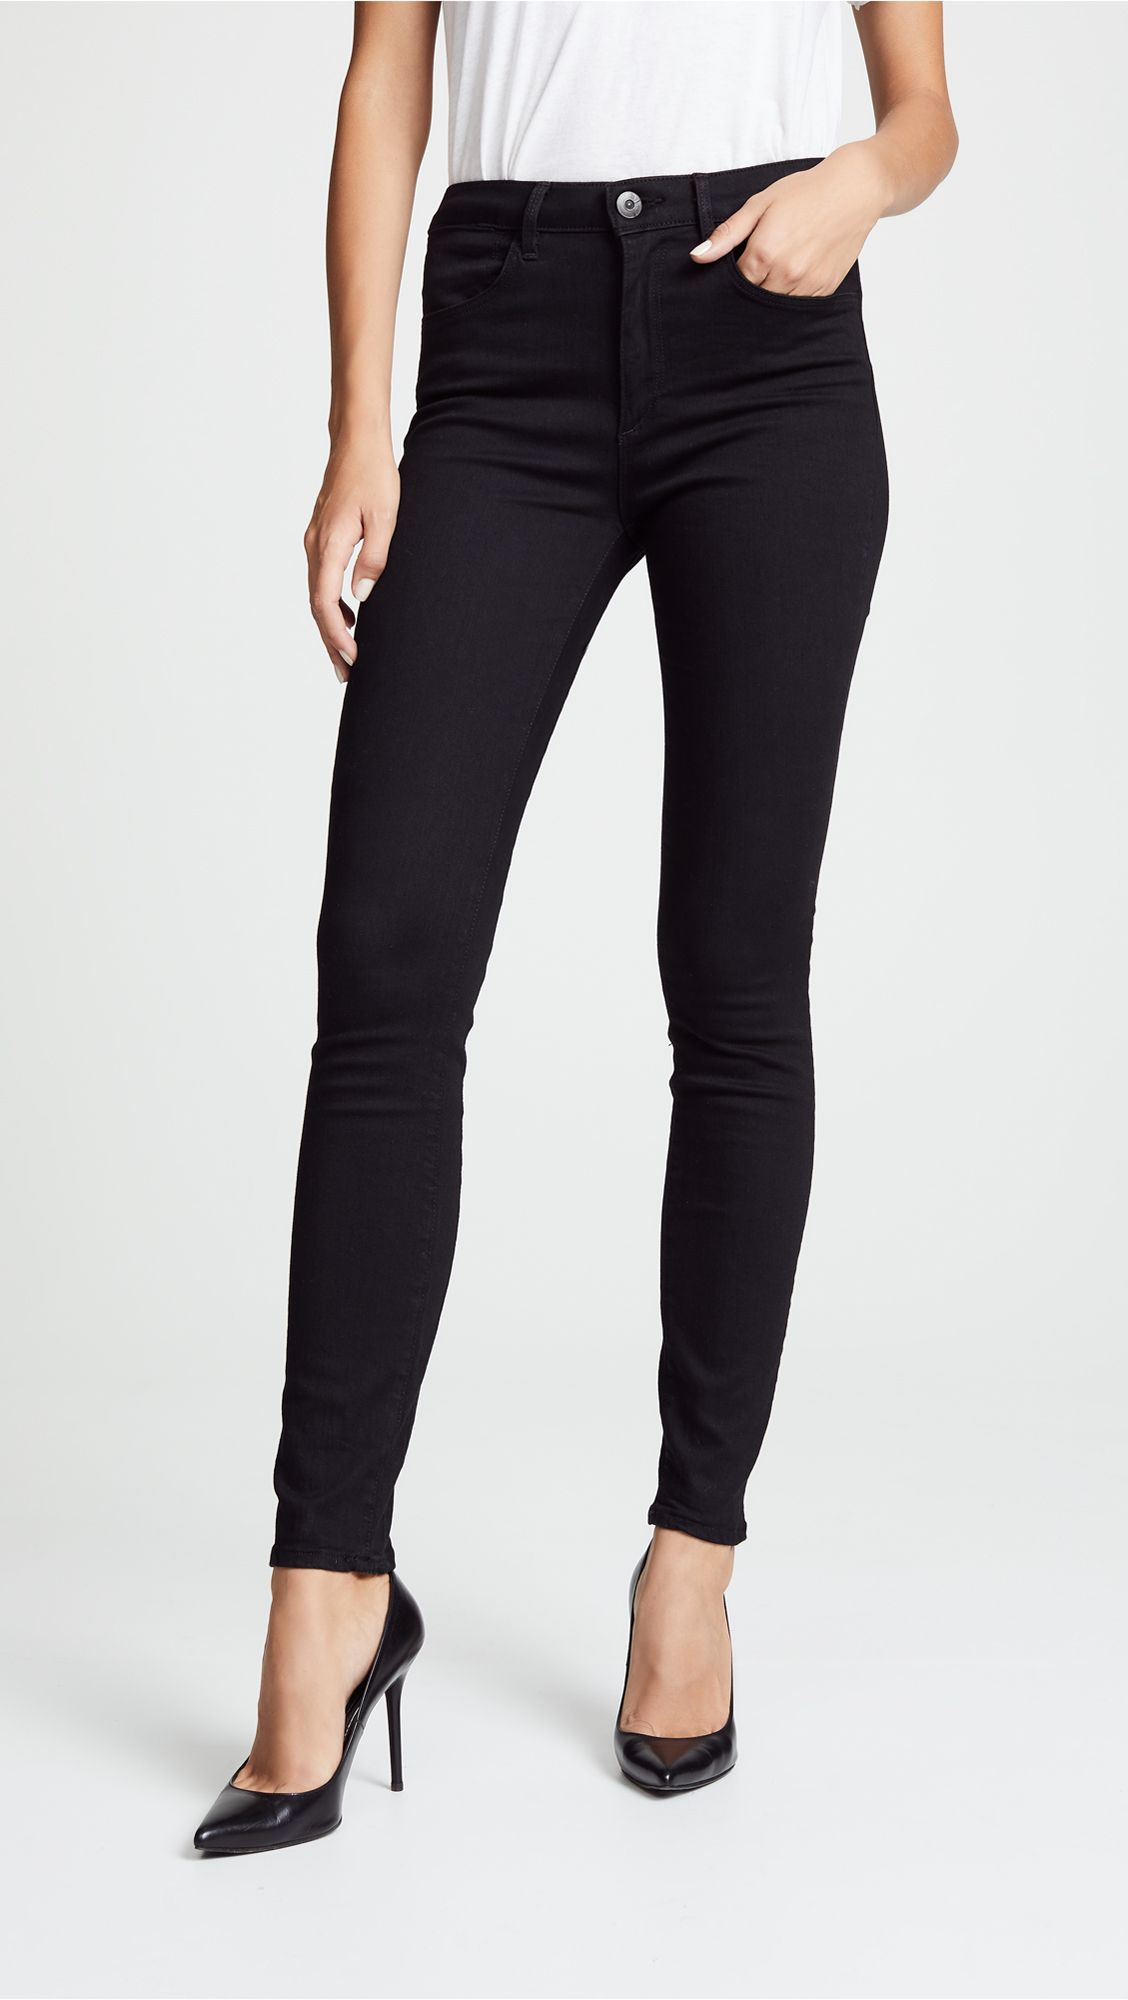 5 Issues Everyone Has With Skinny Jeans (and How to Fix Them) 5